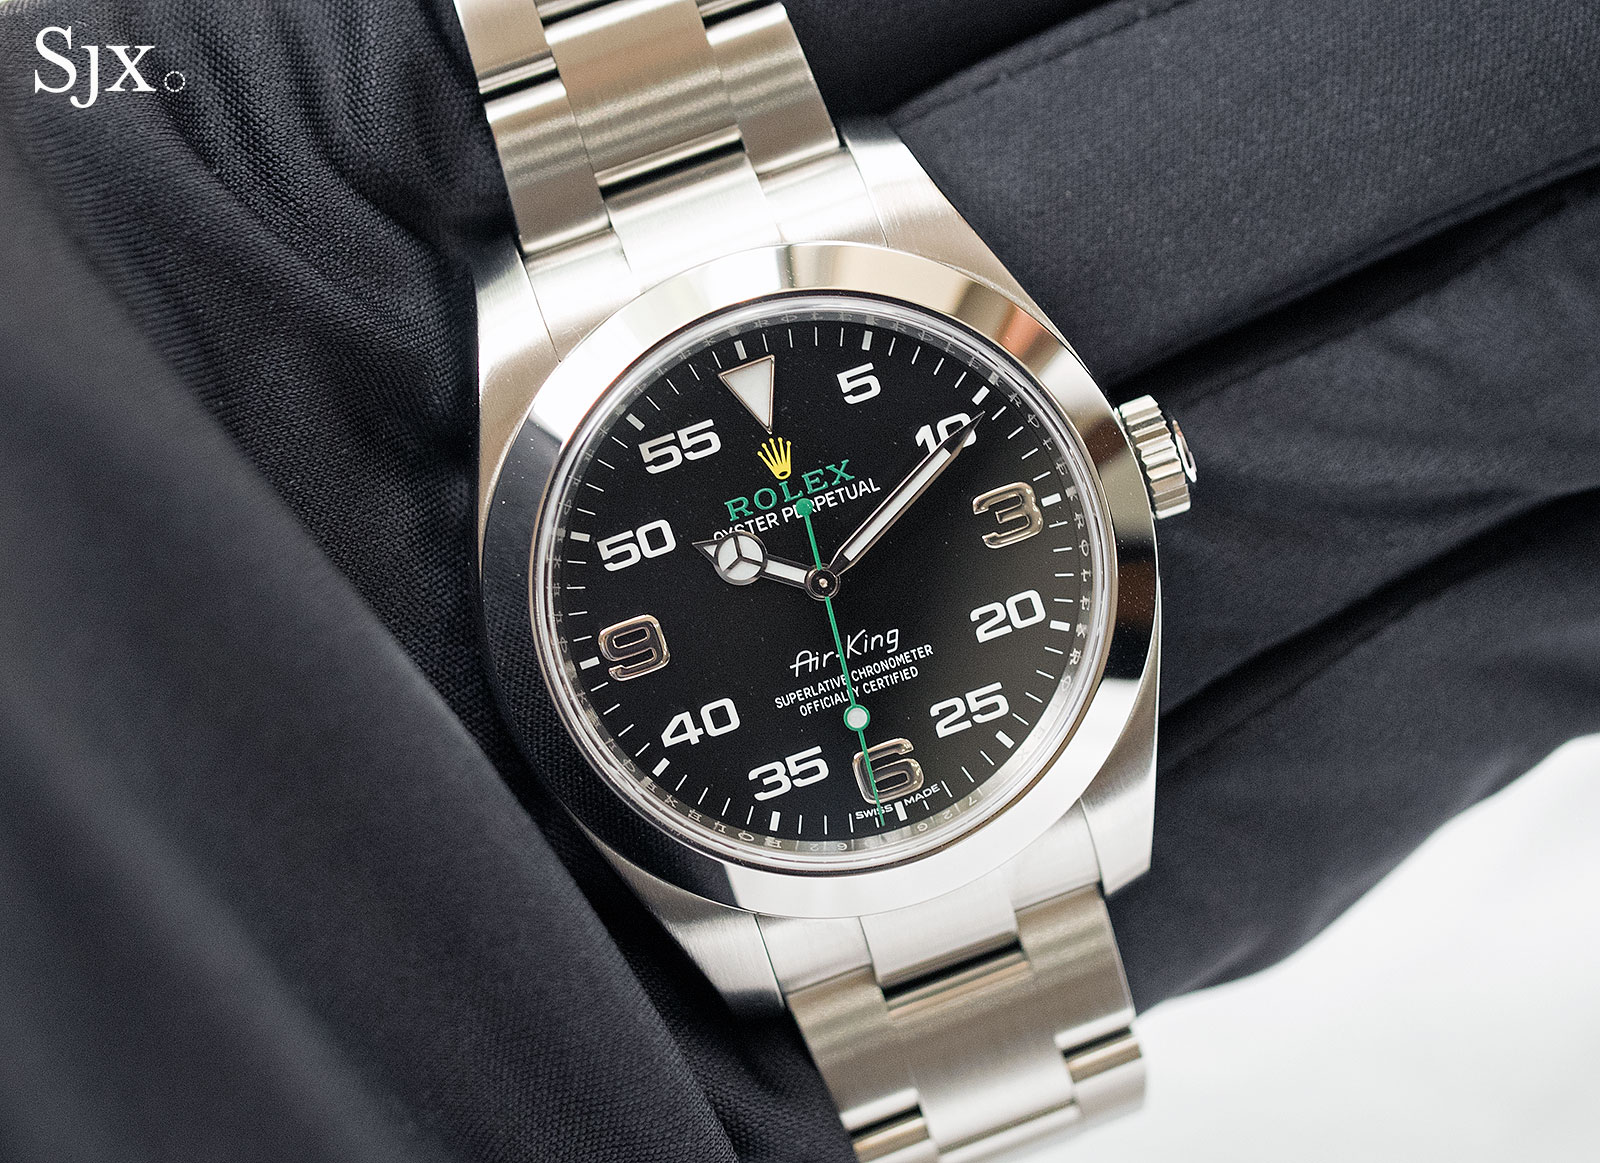 Hands on with the rolex air king which is pretty damn cool sjx watches for Rolex air king